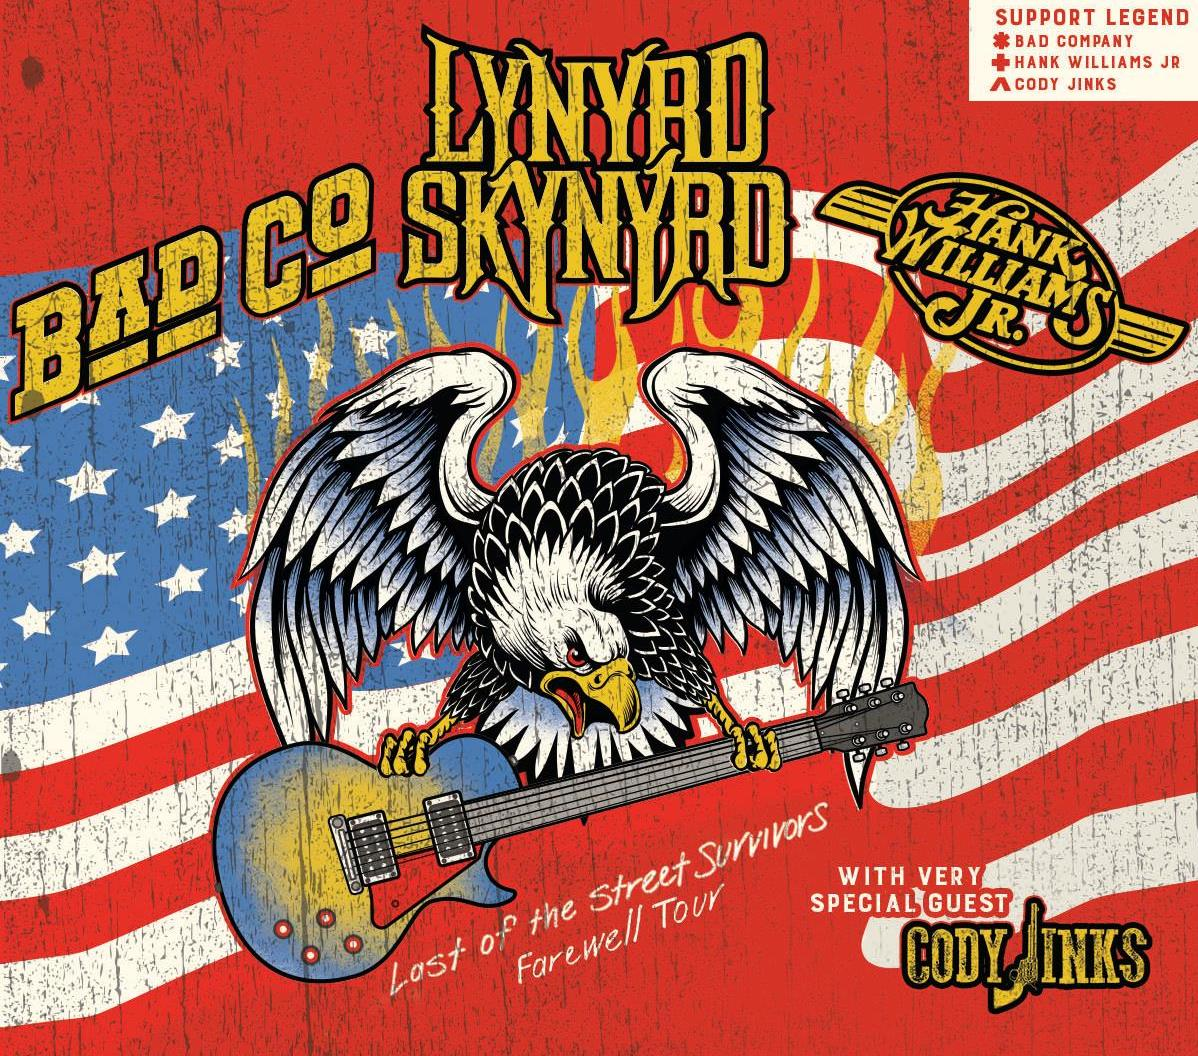 lynyrd skynyrd set 2019 dates for farewell tour best classic bands. Black Bedroom Furniture Sets. Home Design Ideas